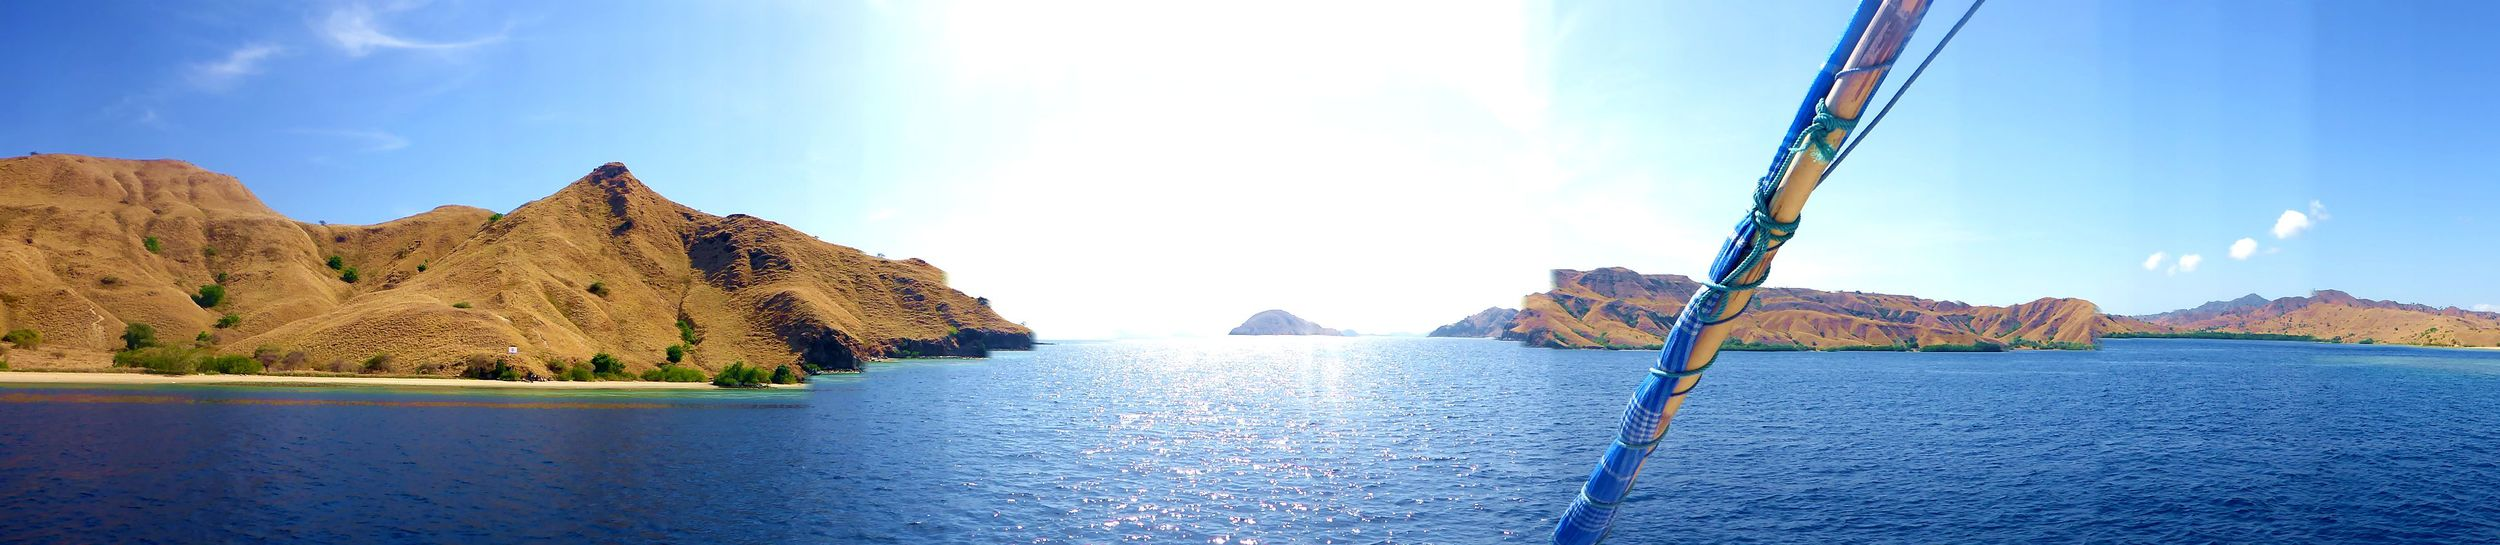 Three day boat tour from Lombok to Komodo Island in Indonesia